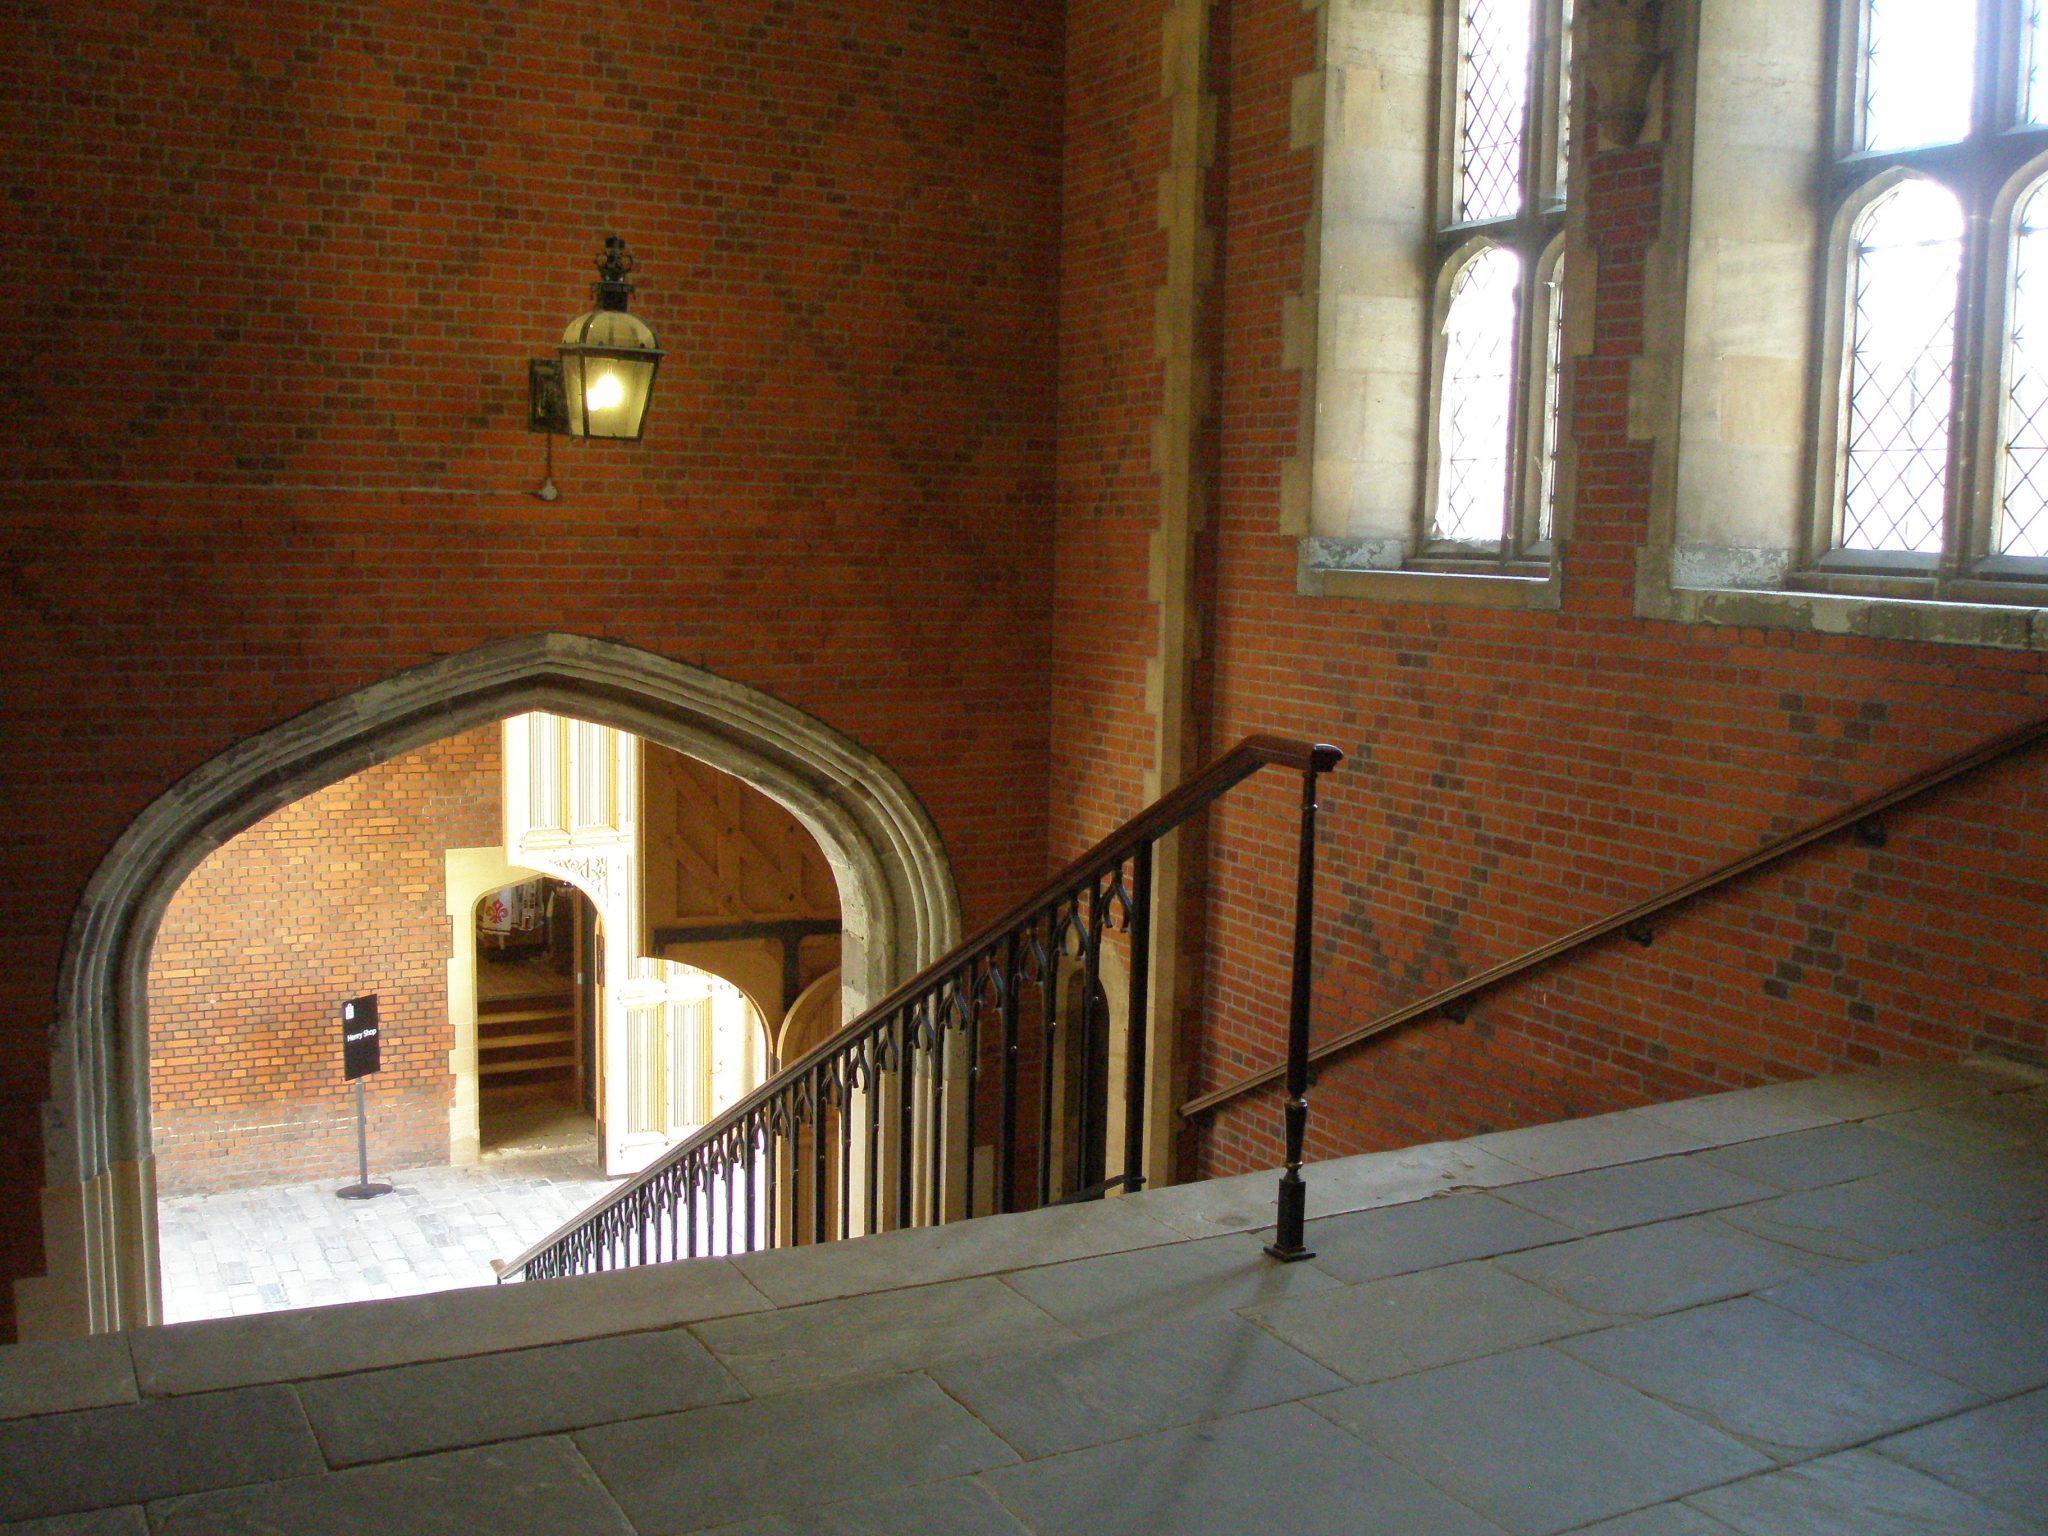 Stairway to Henry VIII's Apartments